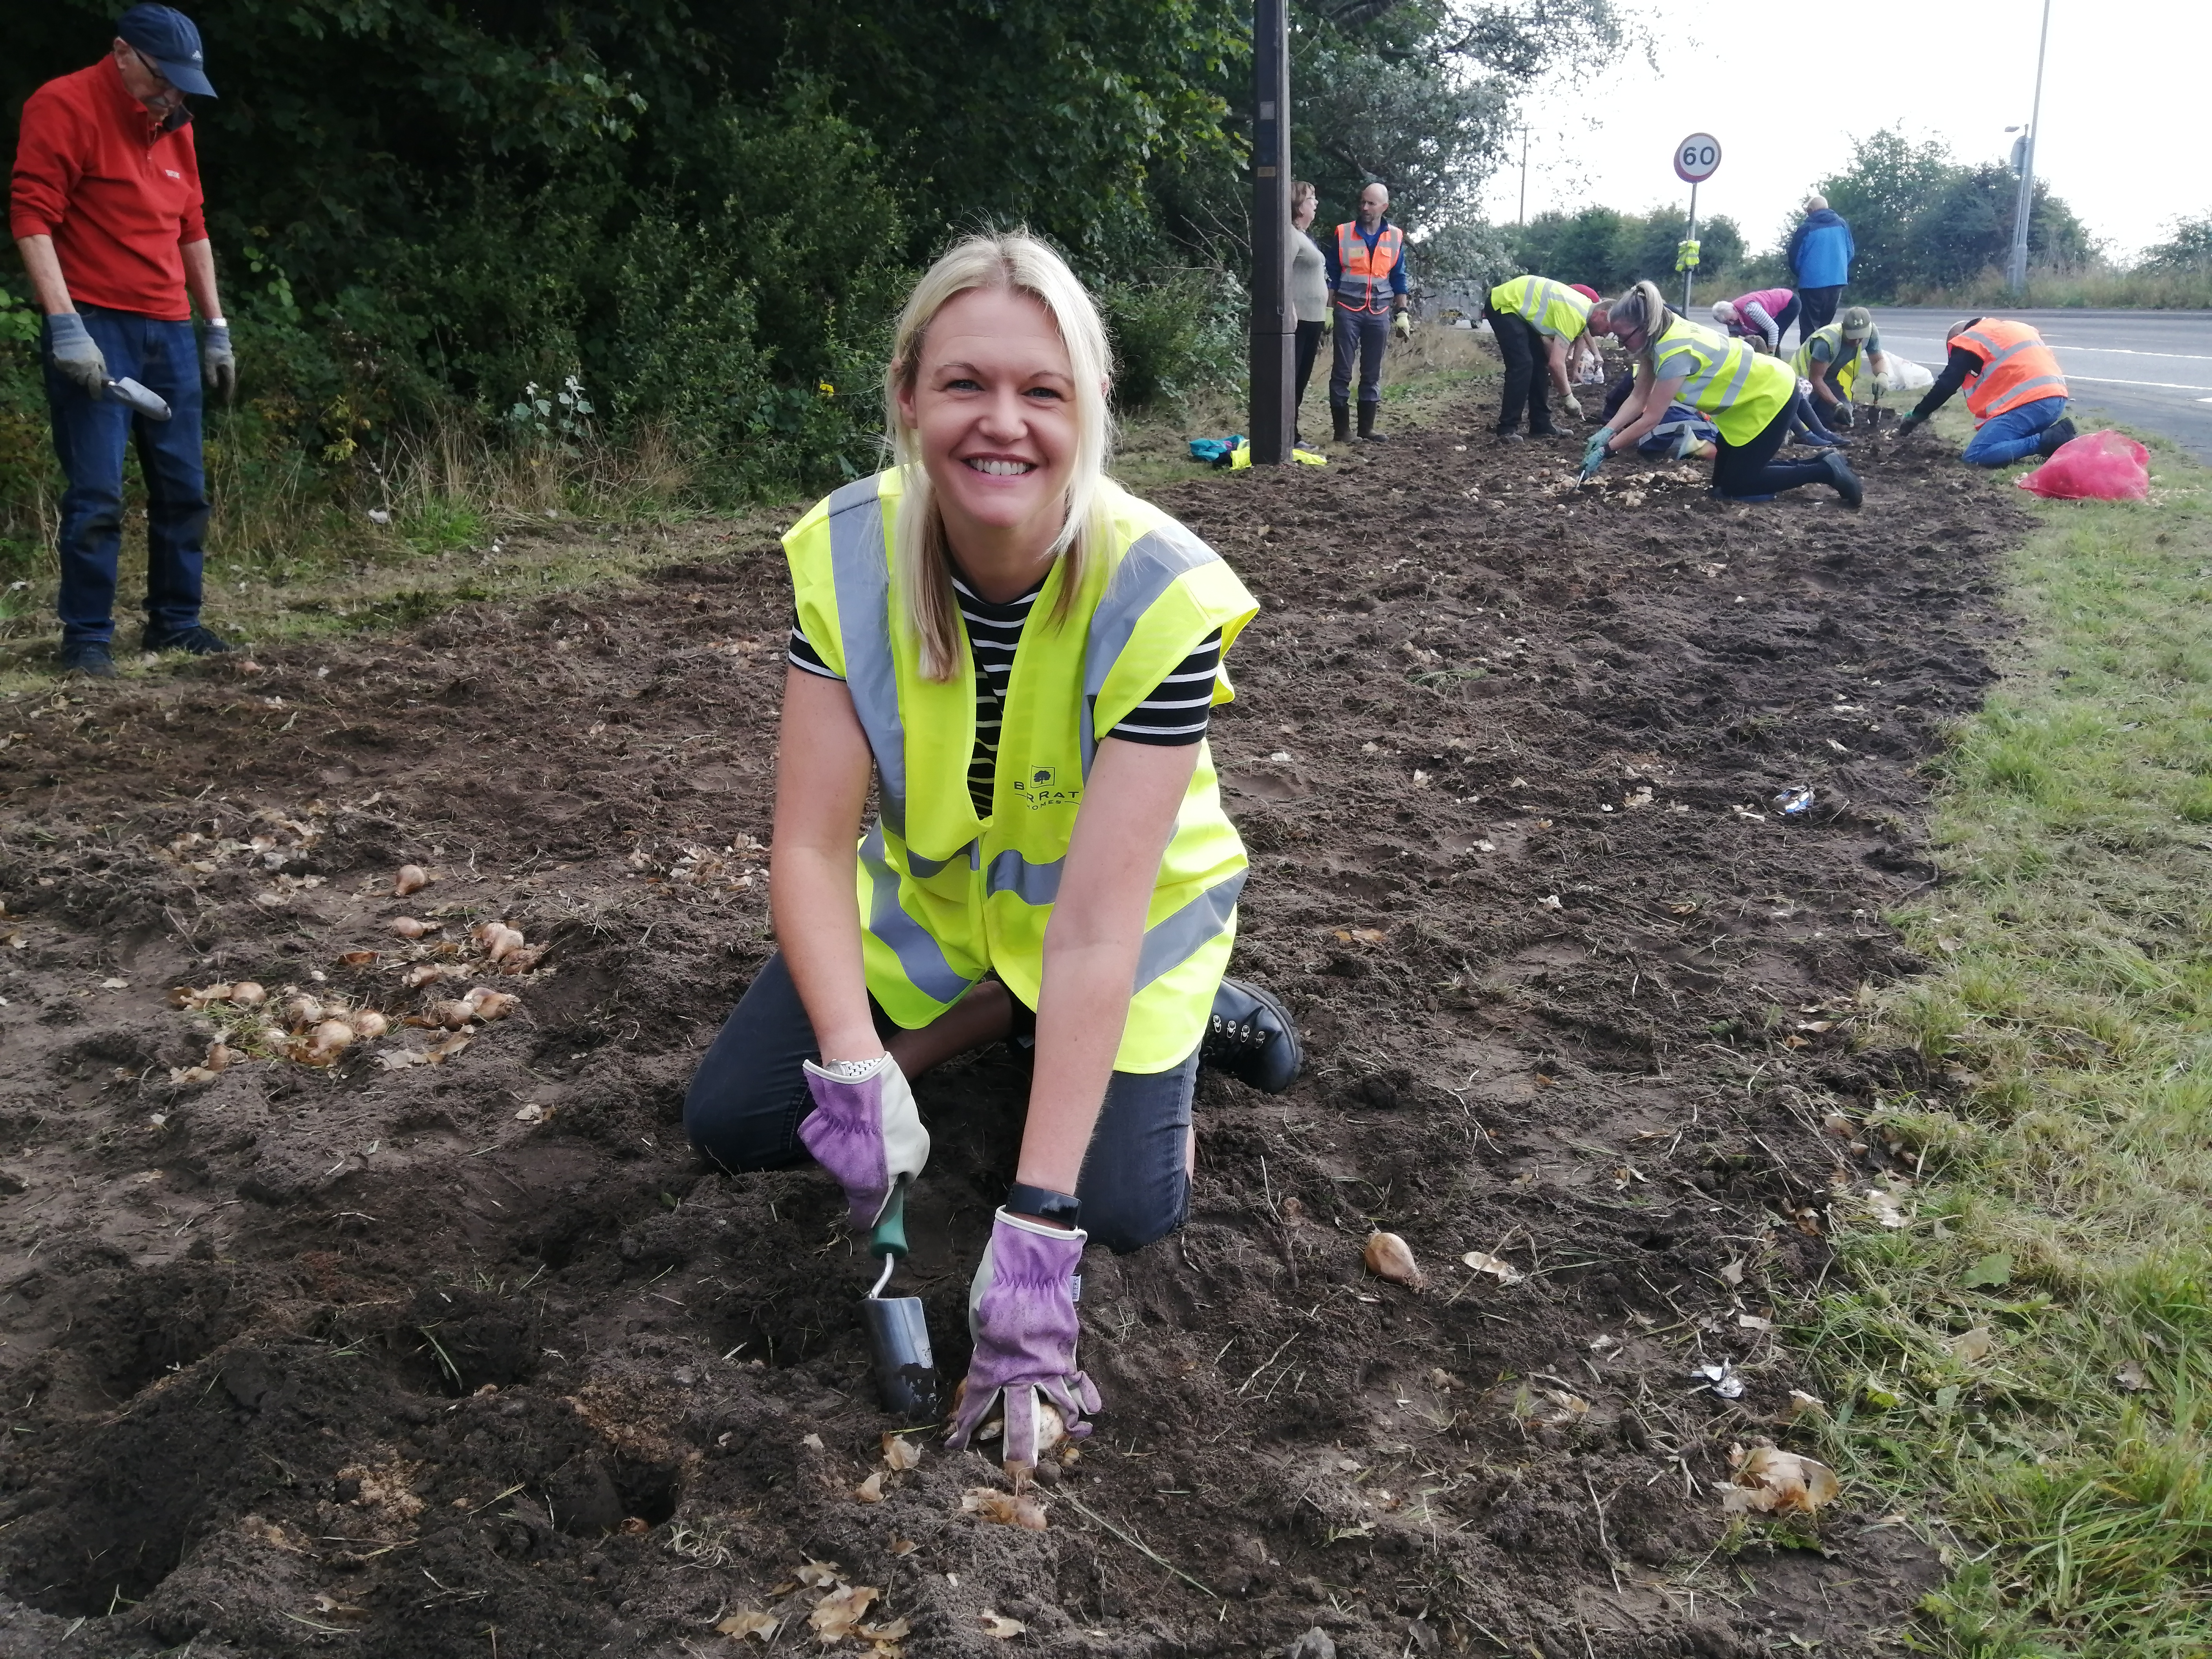 Daffodils replanted by volunteers at Field of Hope